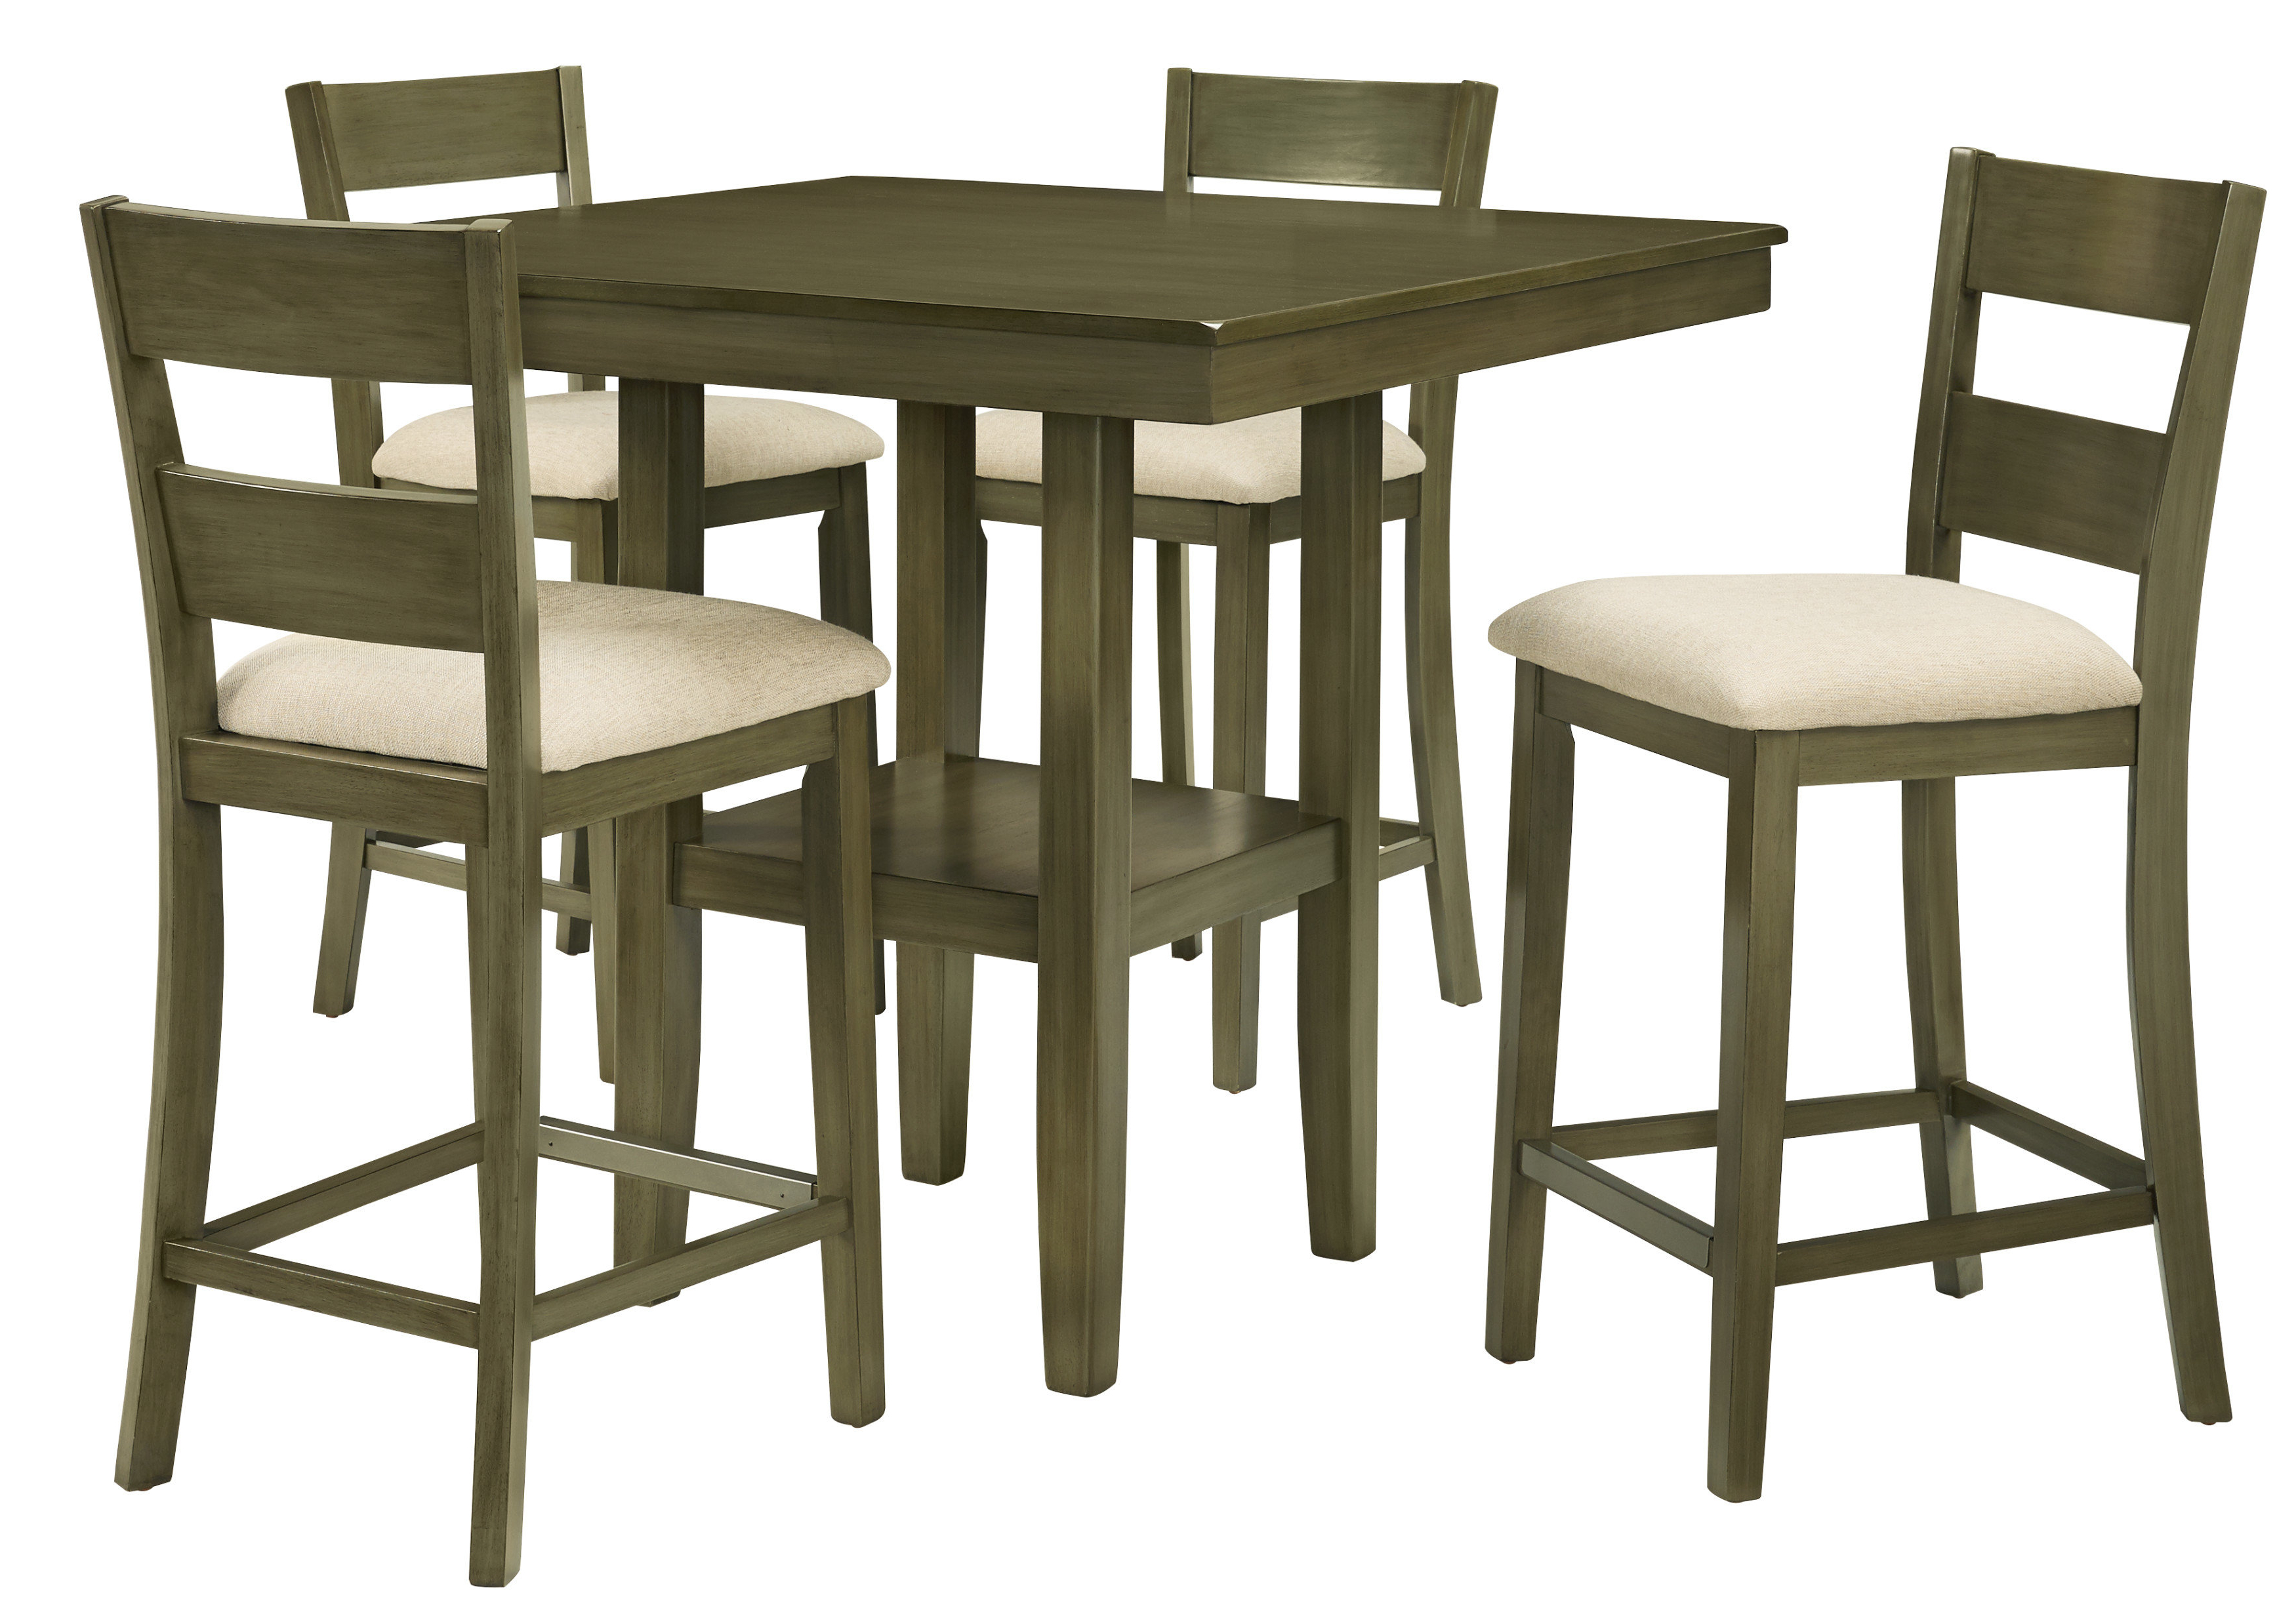 Joss & Main In Bettencourt 3 Piece Counter Height Solid Wood Dining Sets (View 10 of 25)